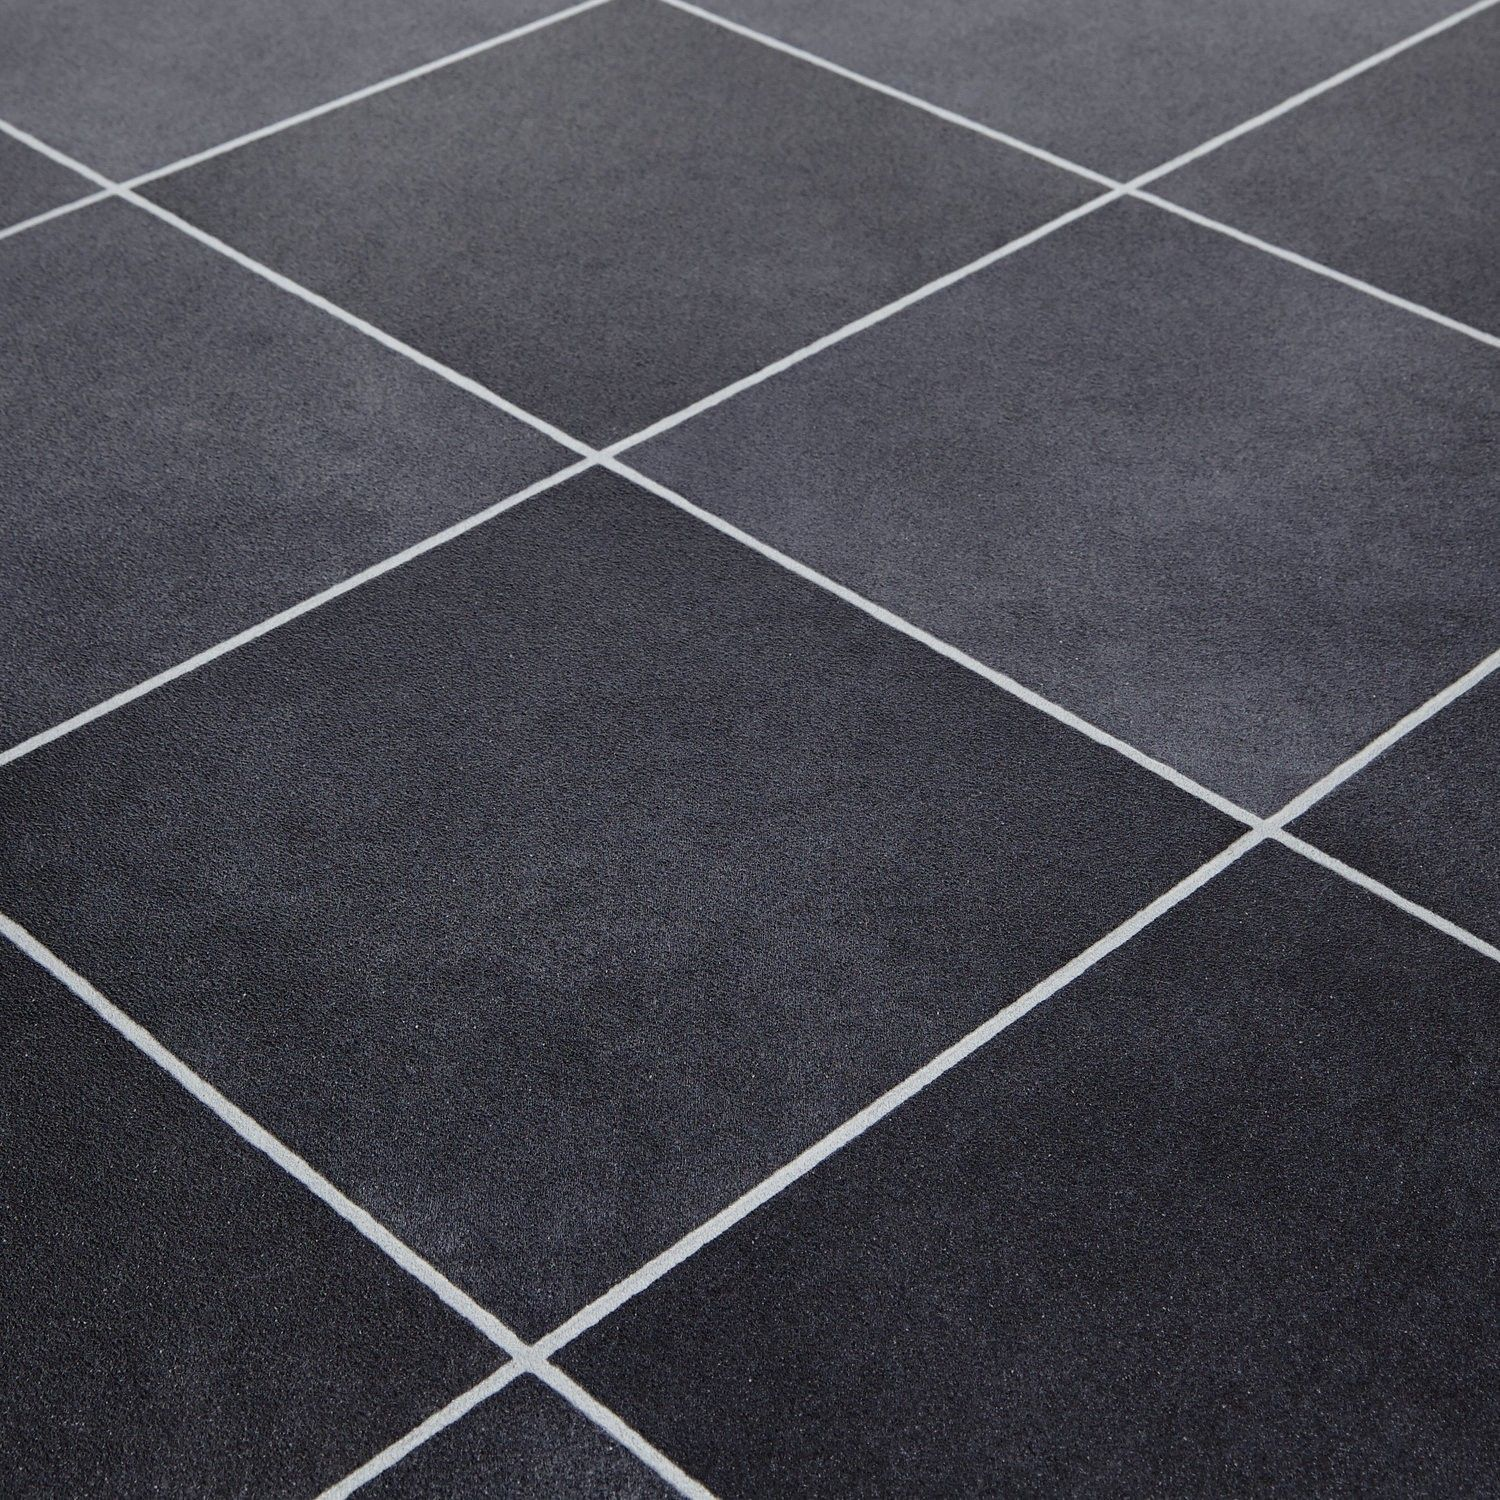 Mardi gras 598 durango black stone tile vinyl flooring for Carpet and vinyl flooring